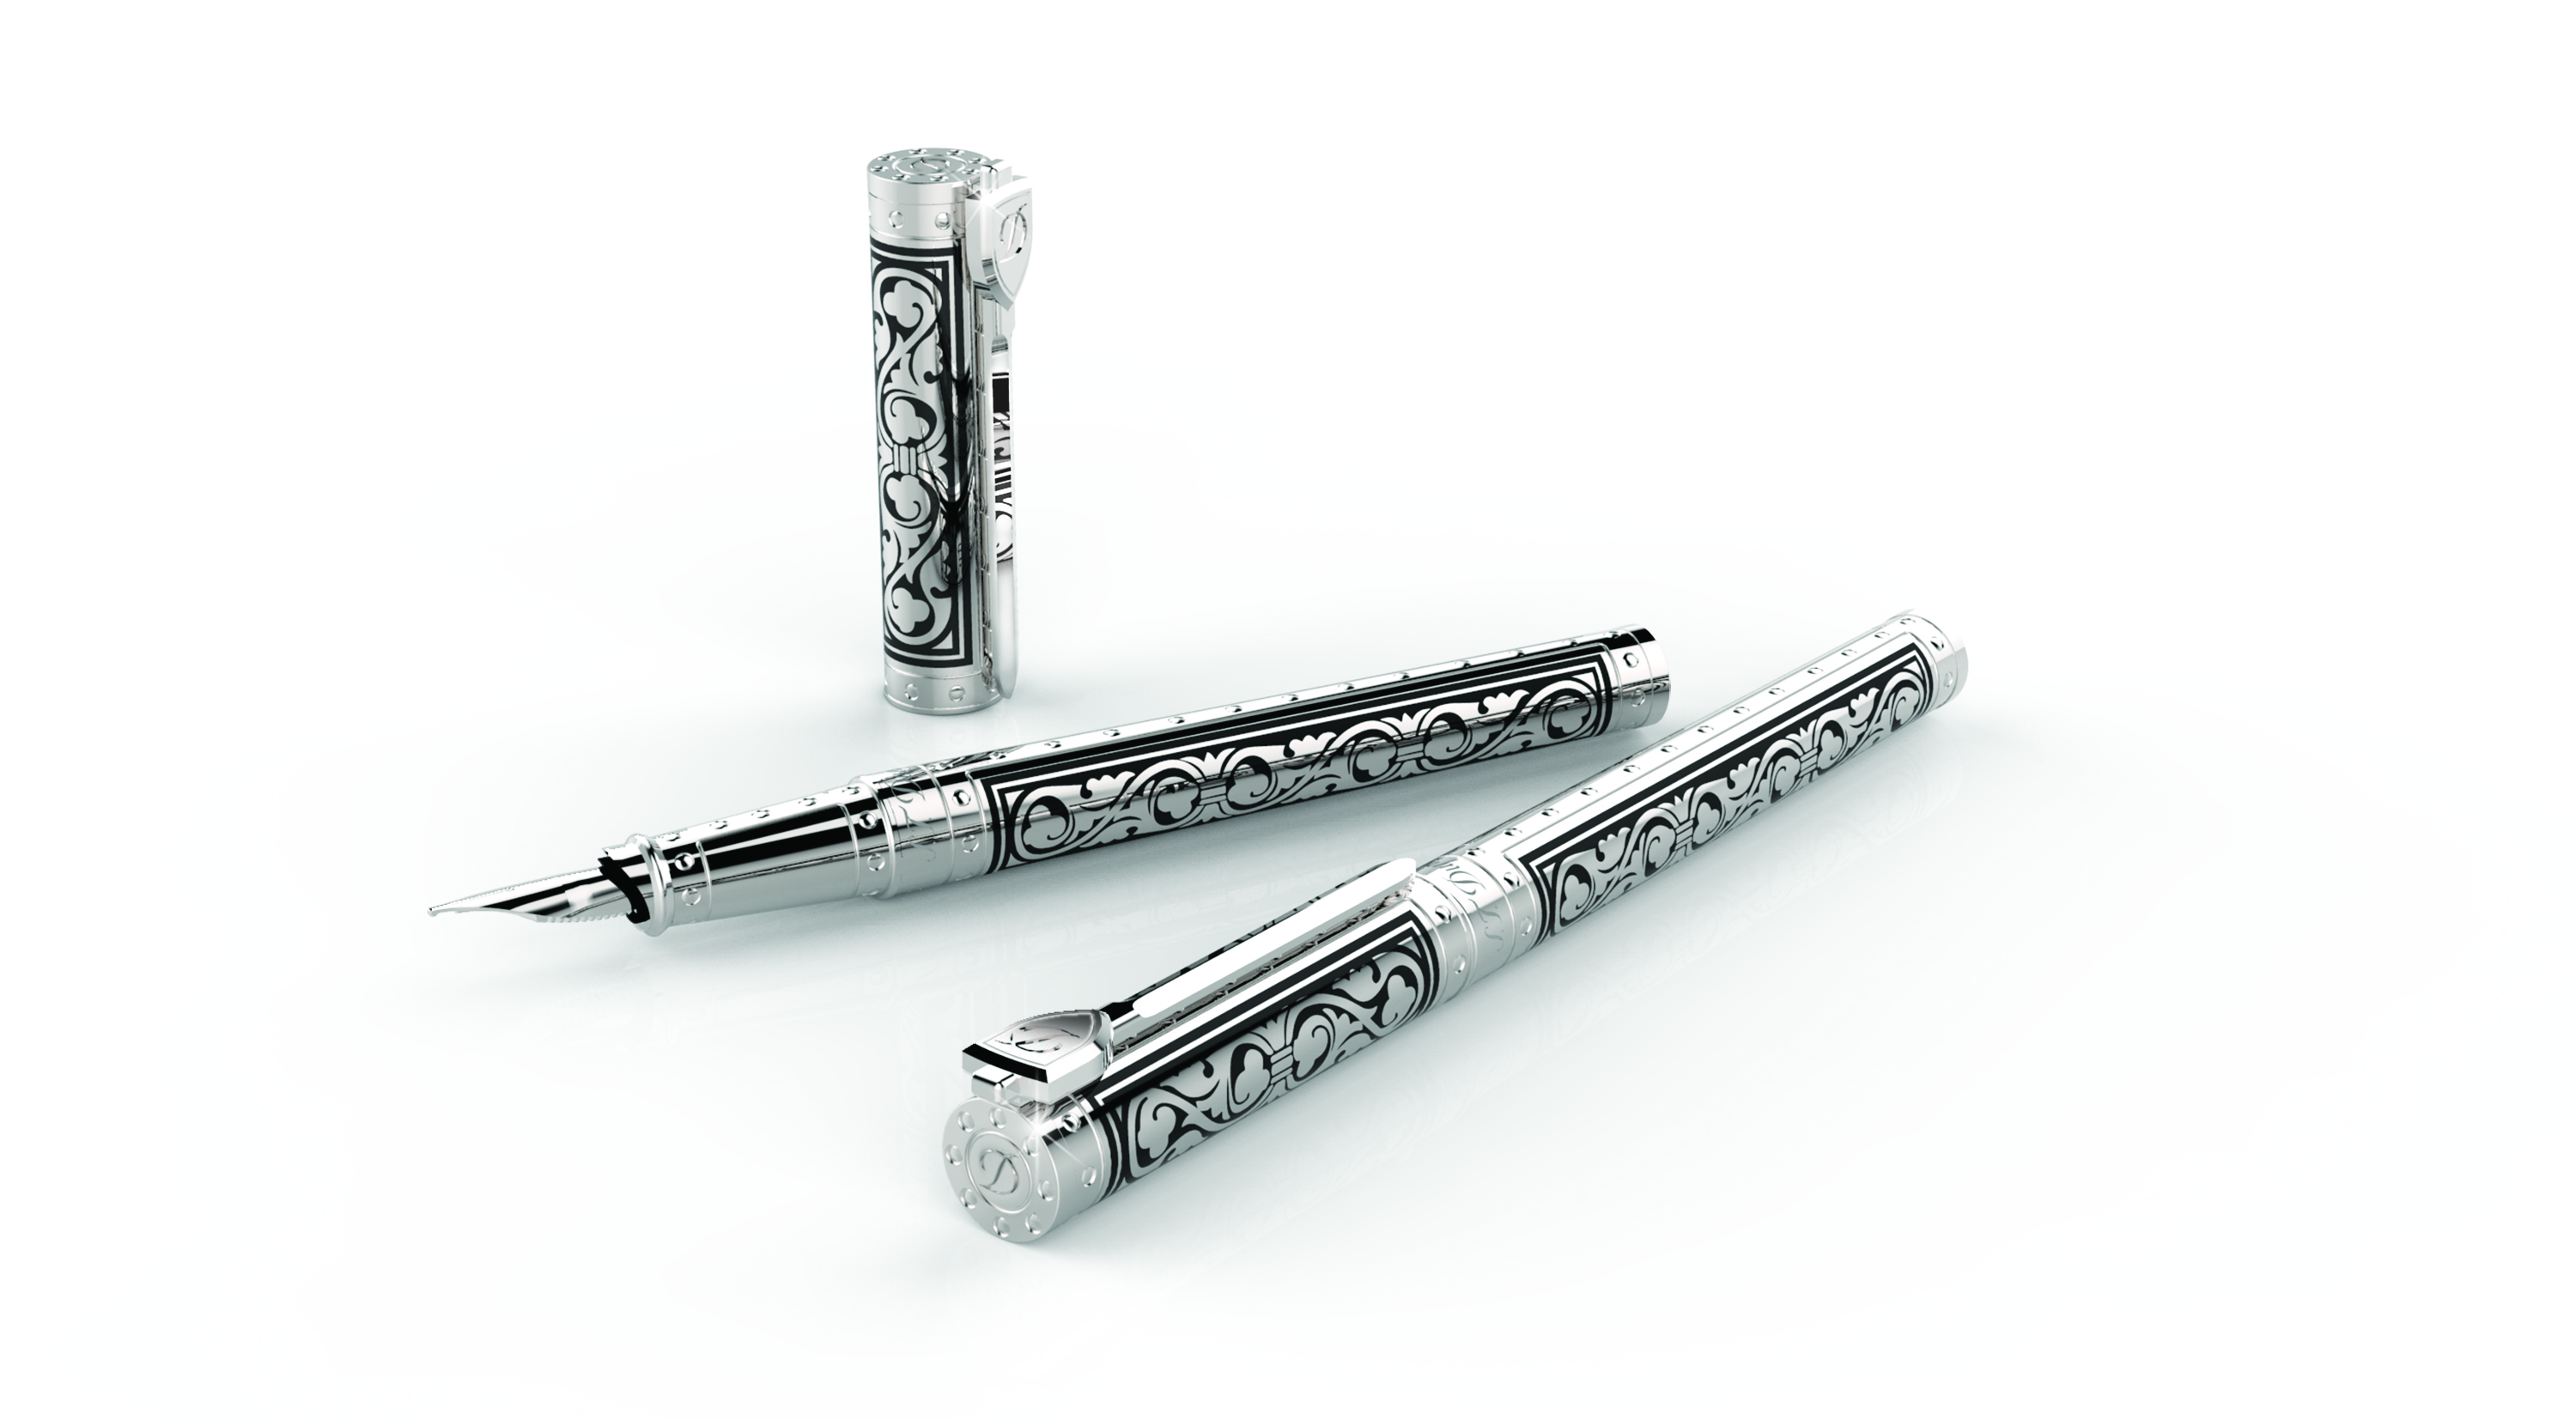 St Dupont White Knight Premium Fountain Pen